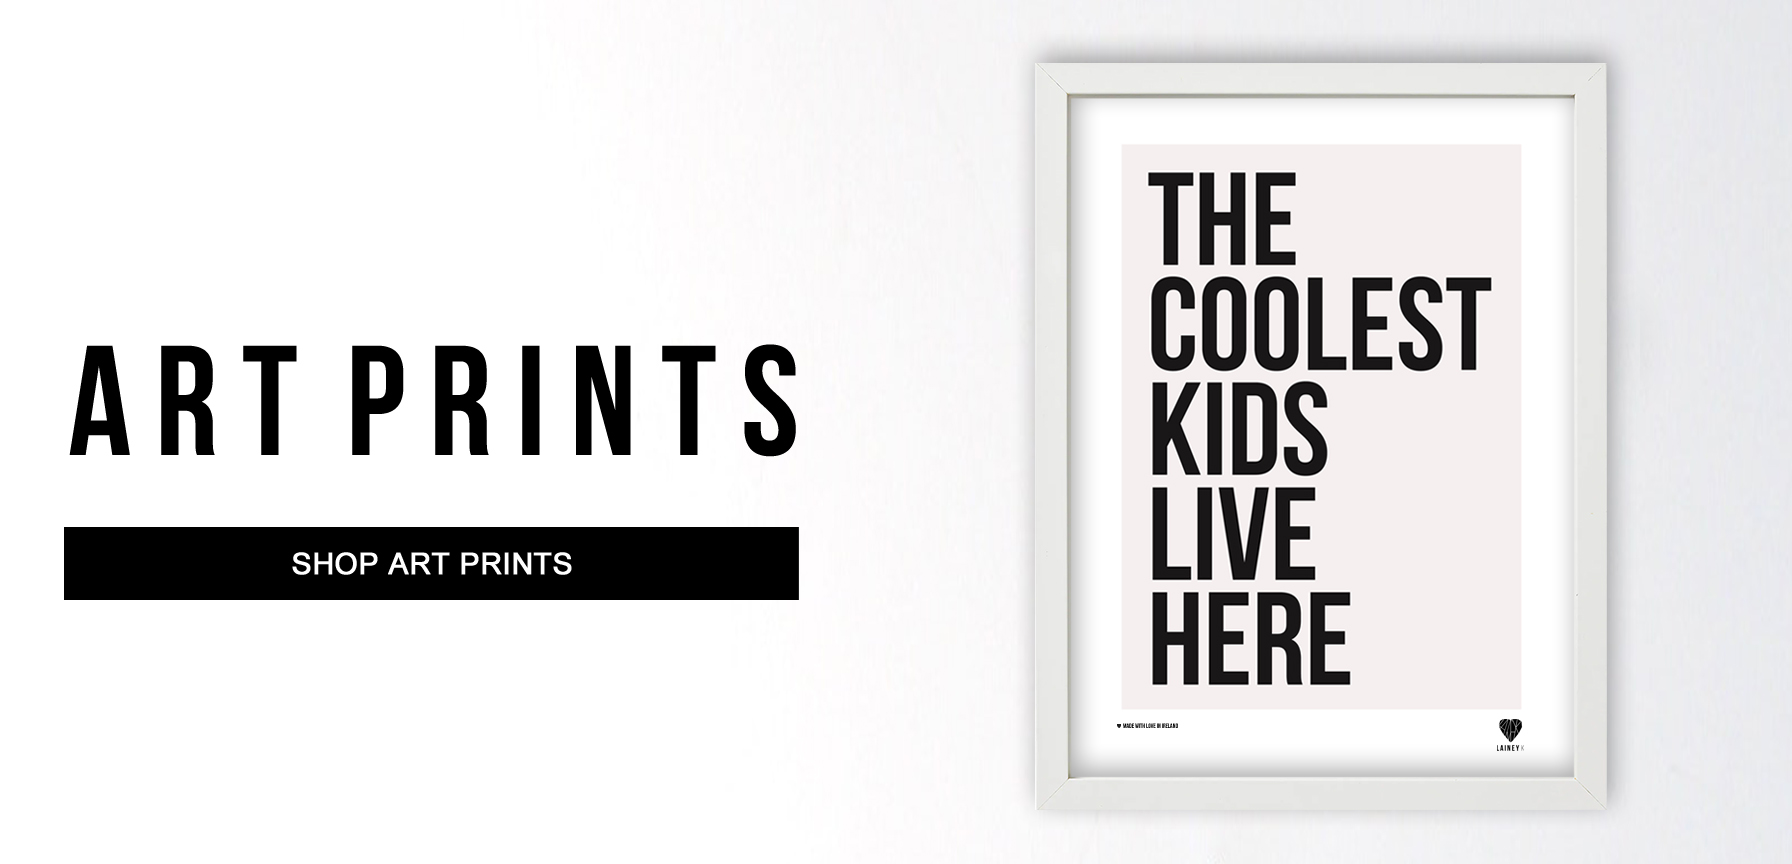 HOMEPAGE HERO_PRINTS_THE COOLEST KIDS LIVE HERE